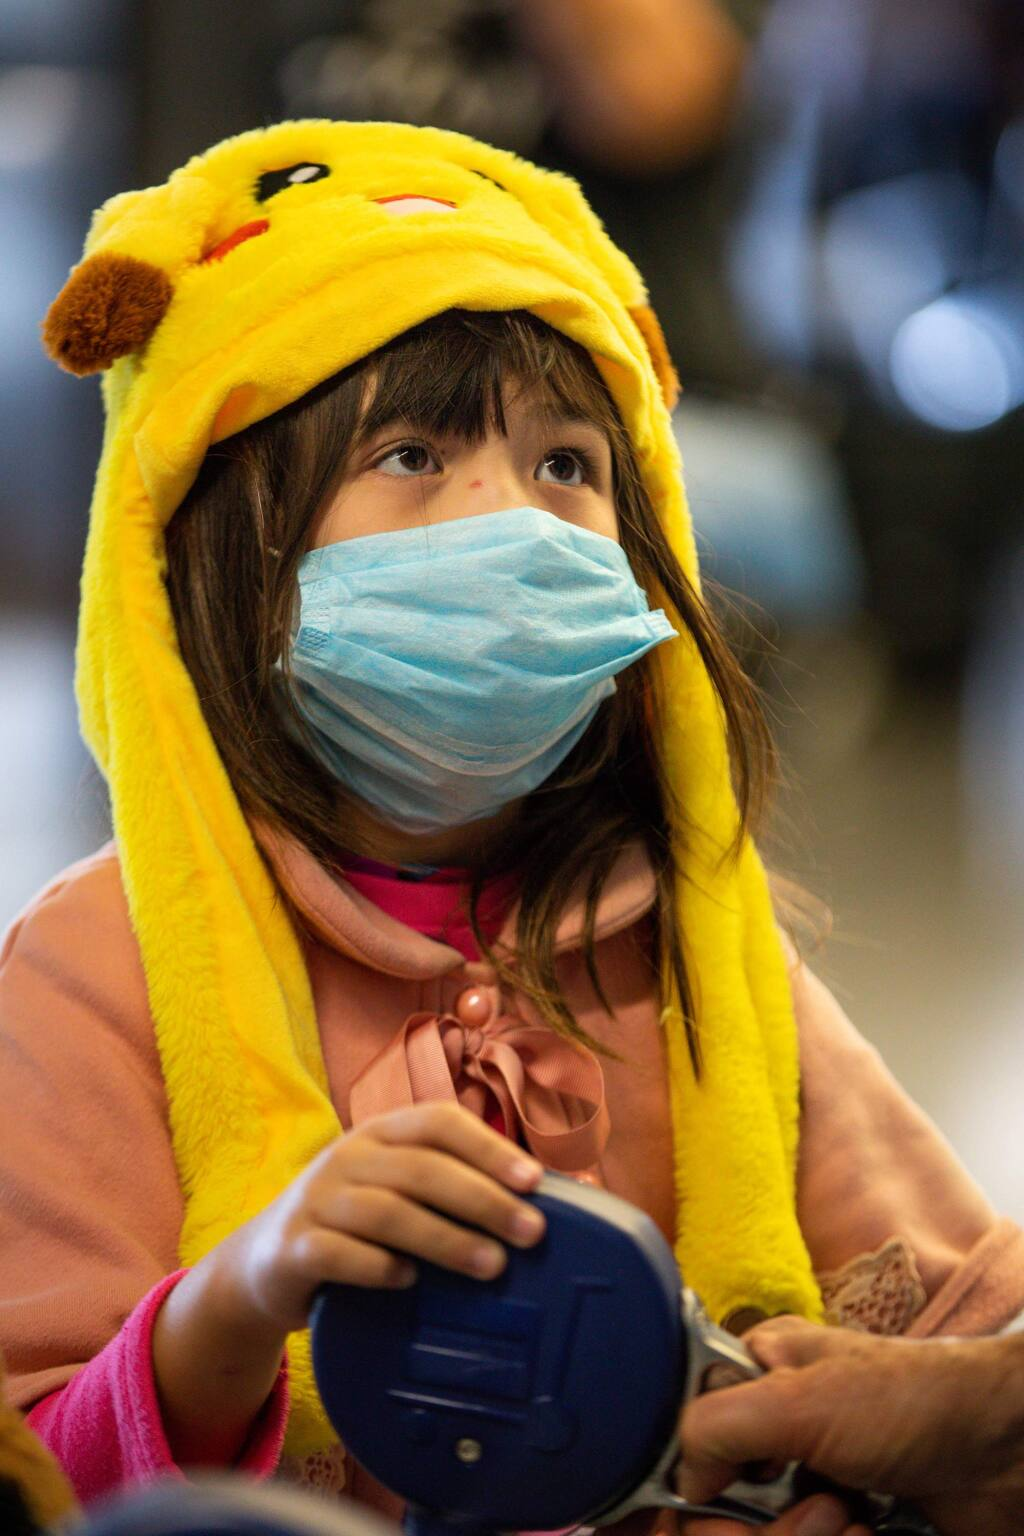 Daisy Johnston, 8, wears a face mask upon arriving to terminal G at San Francisco International Airport on Tuesday, Feb. 4, 2020. Daisy returned from China with her mother Amy Deng, who also wore a face mask because of the threat of the coronavirus. (Randy Vazquez/Bay Area News Group/TNS)